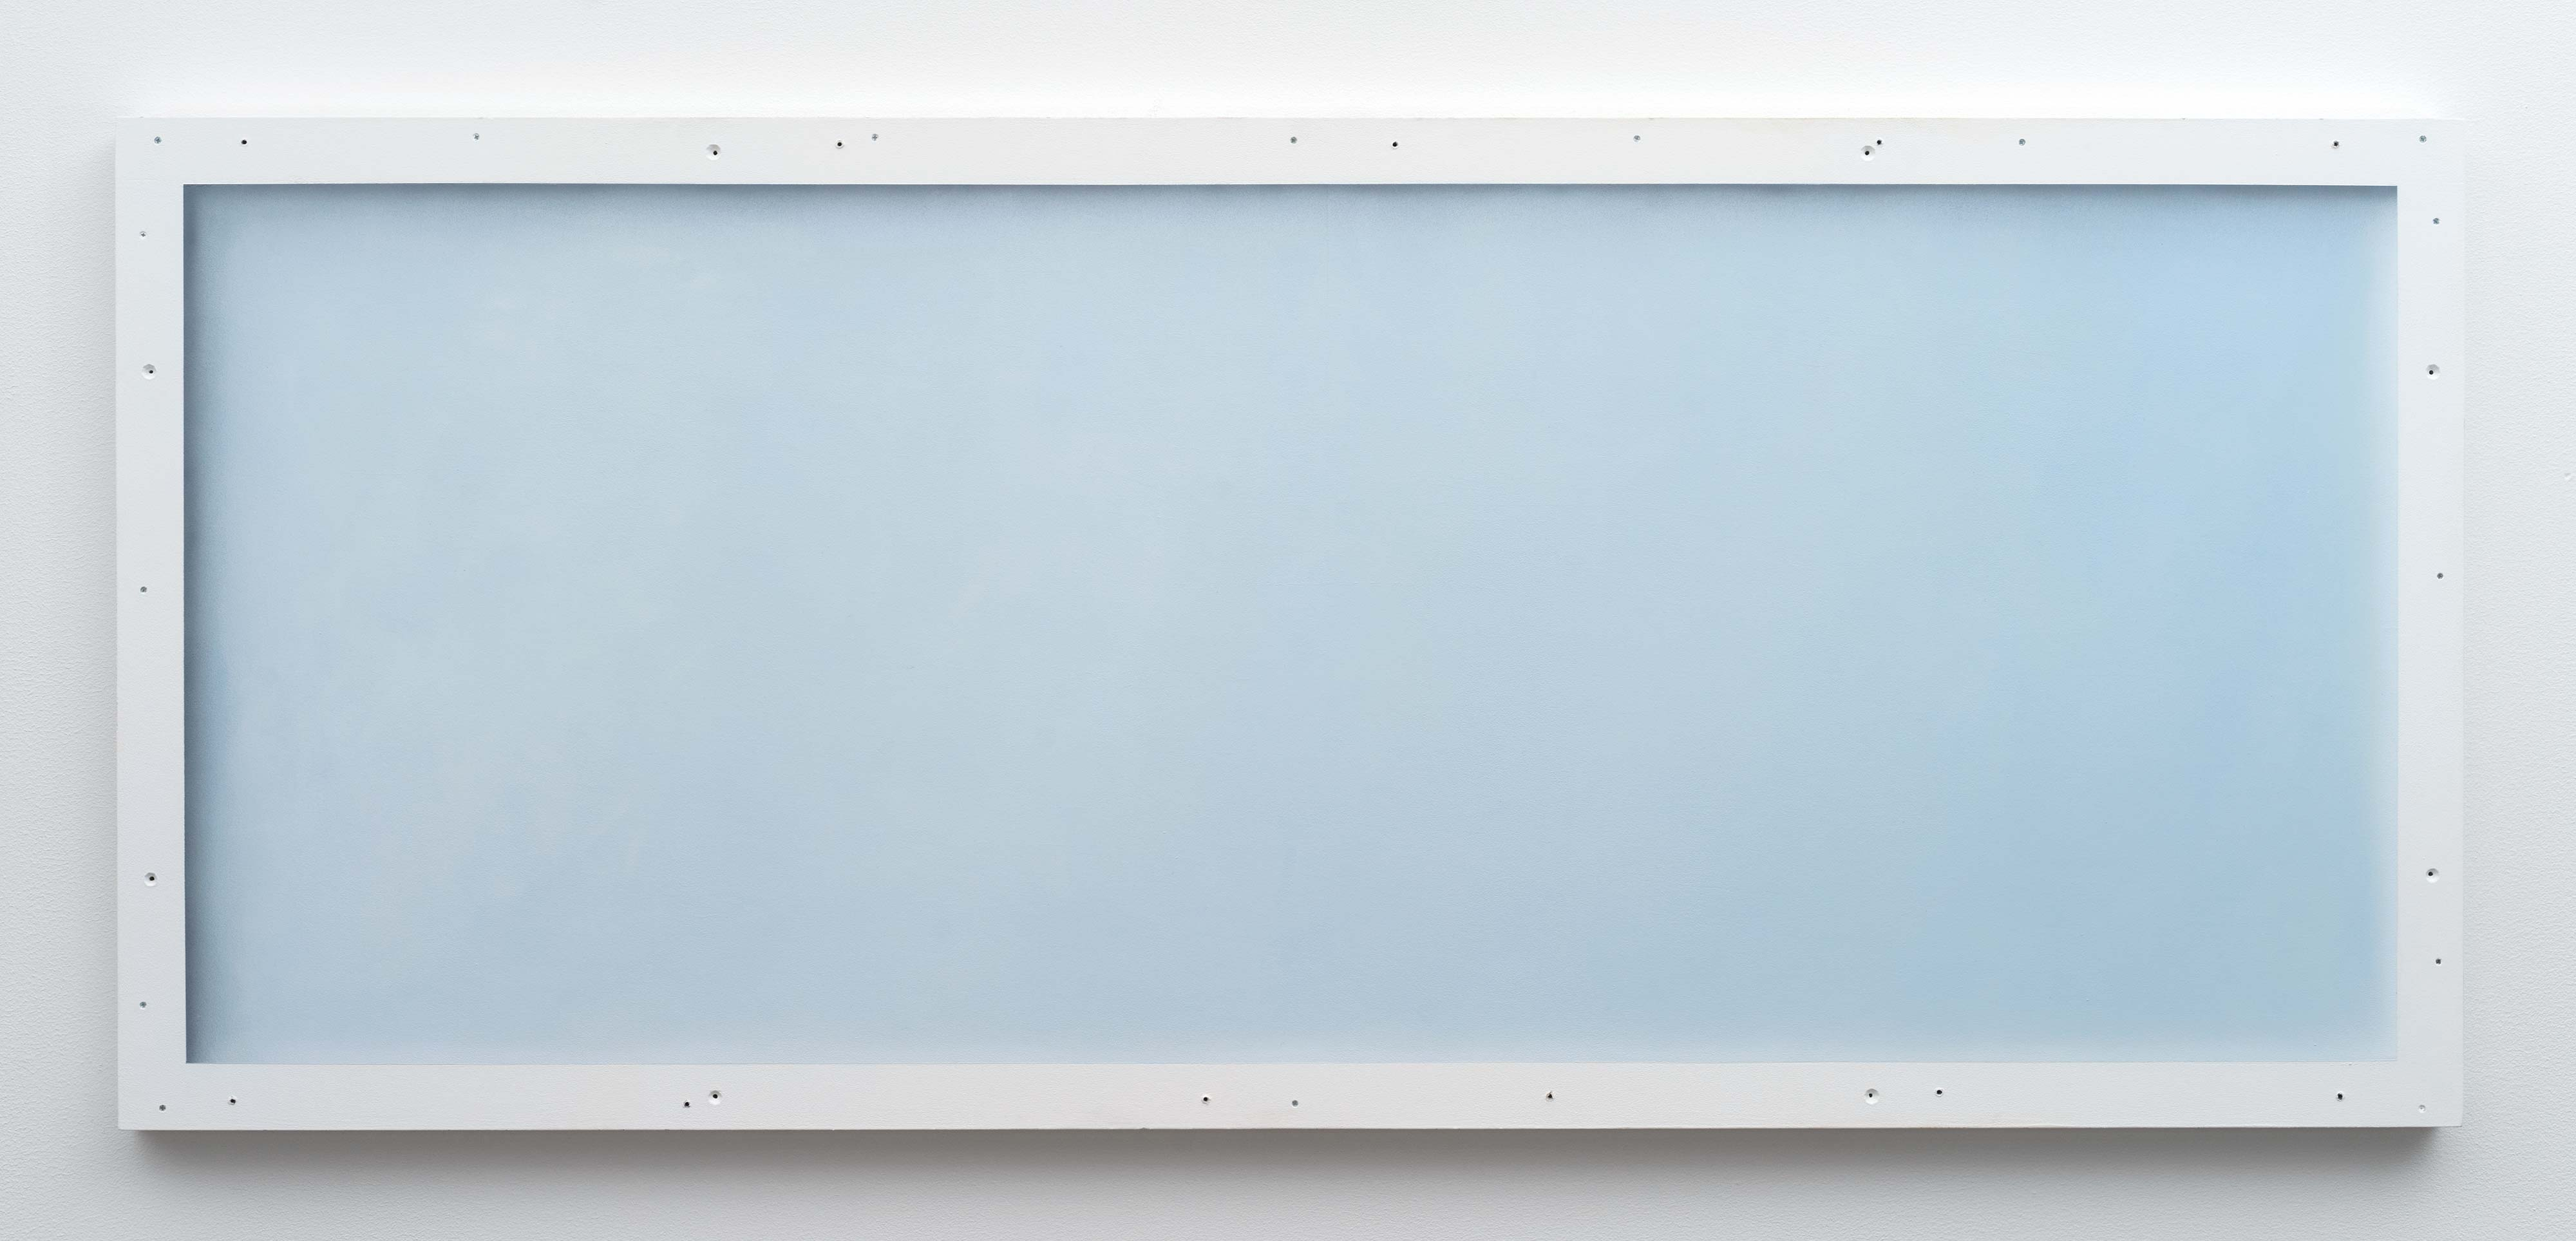 Christopher Page<br>High Noon (II)<br>2016<br>oil and acrylic on panel<br>23.6 x 54.3 in (60 x 138 cm)